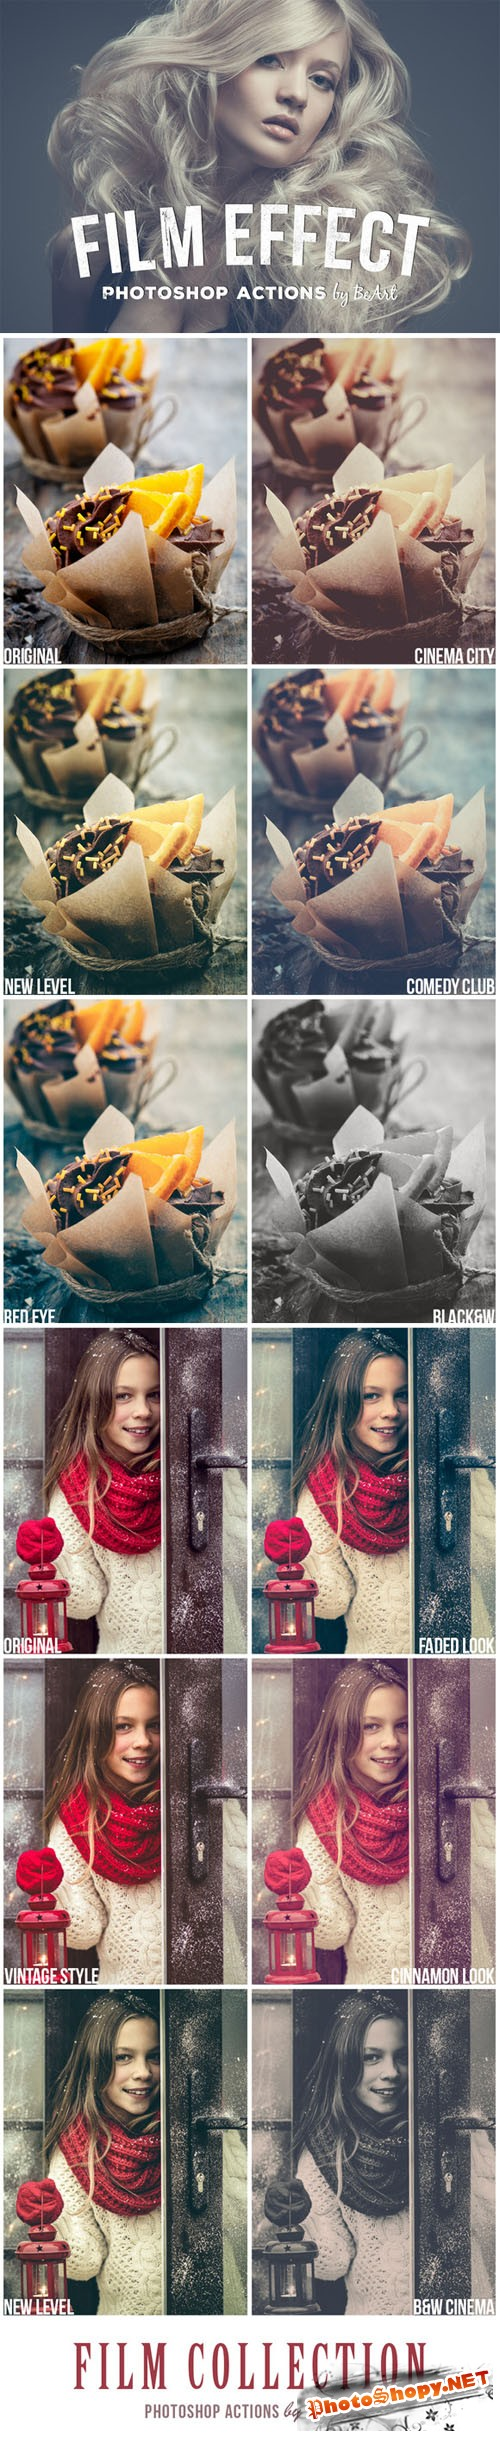 Film Effect Photoshop Actions - CM 135704